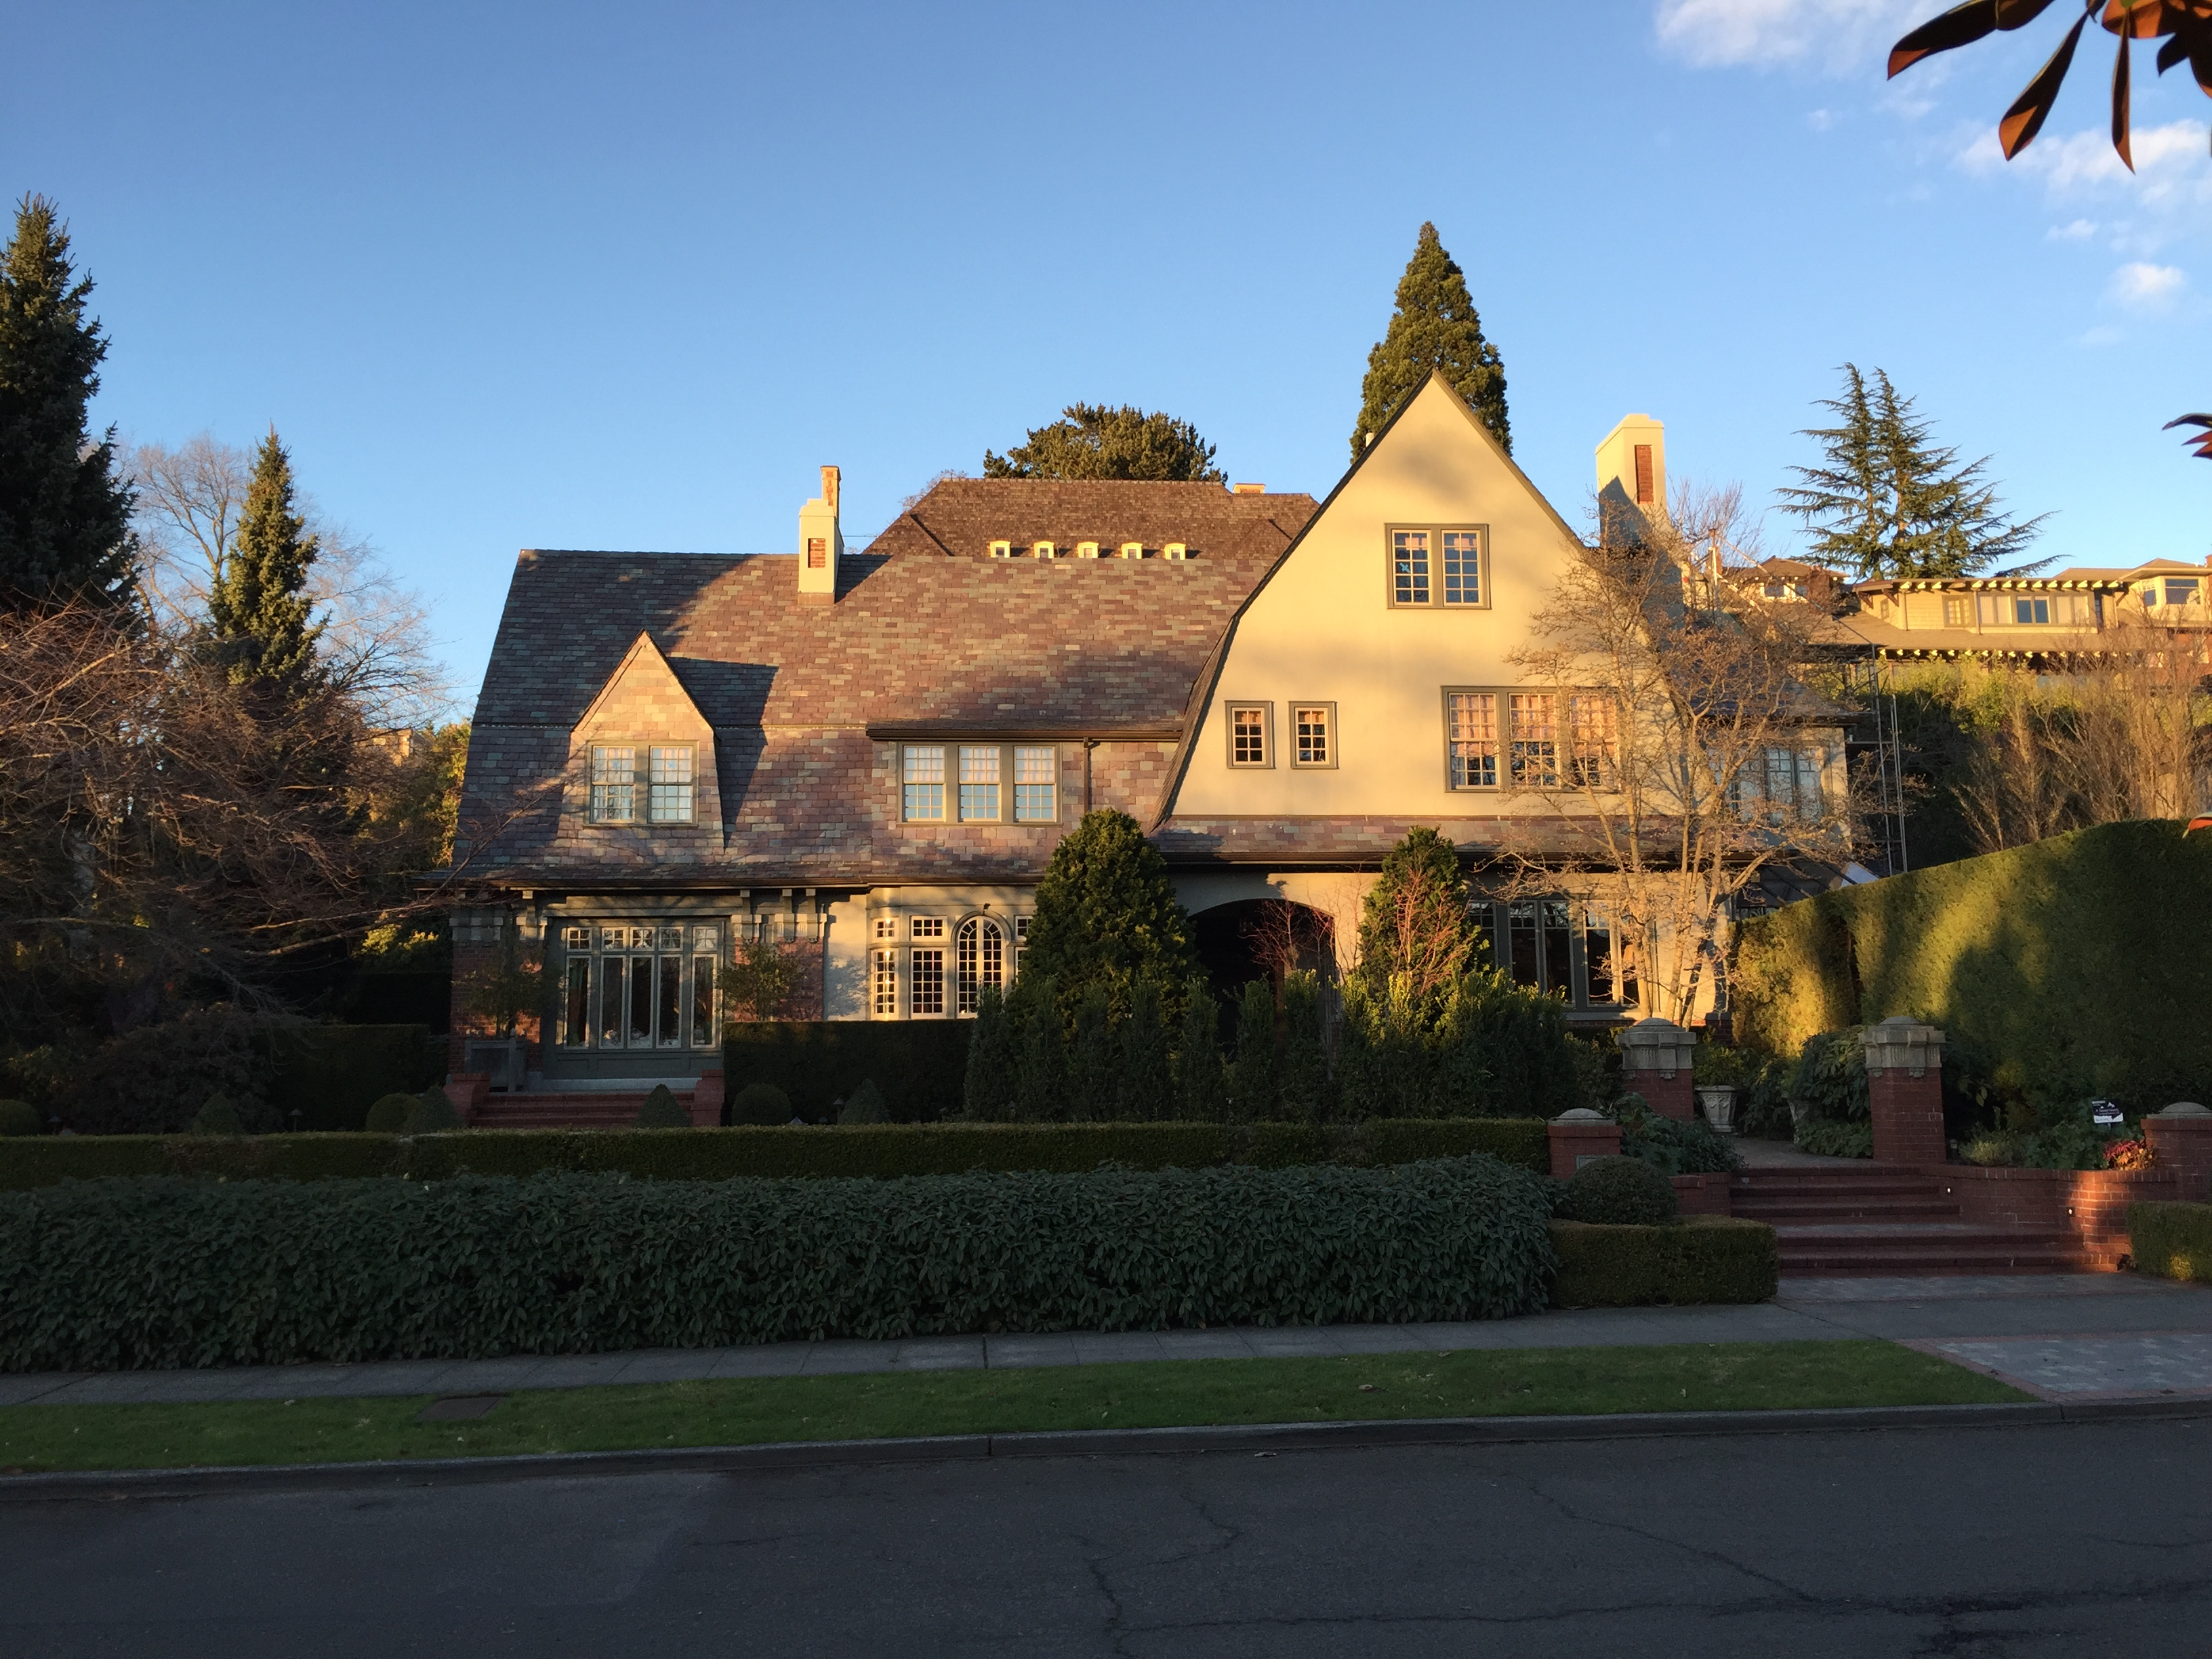 Queen Anne has some very cool historic houses